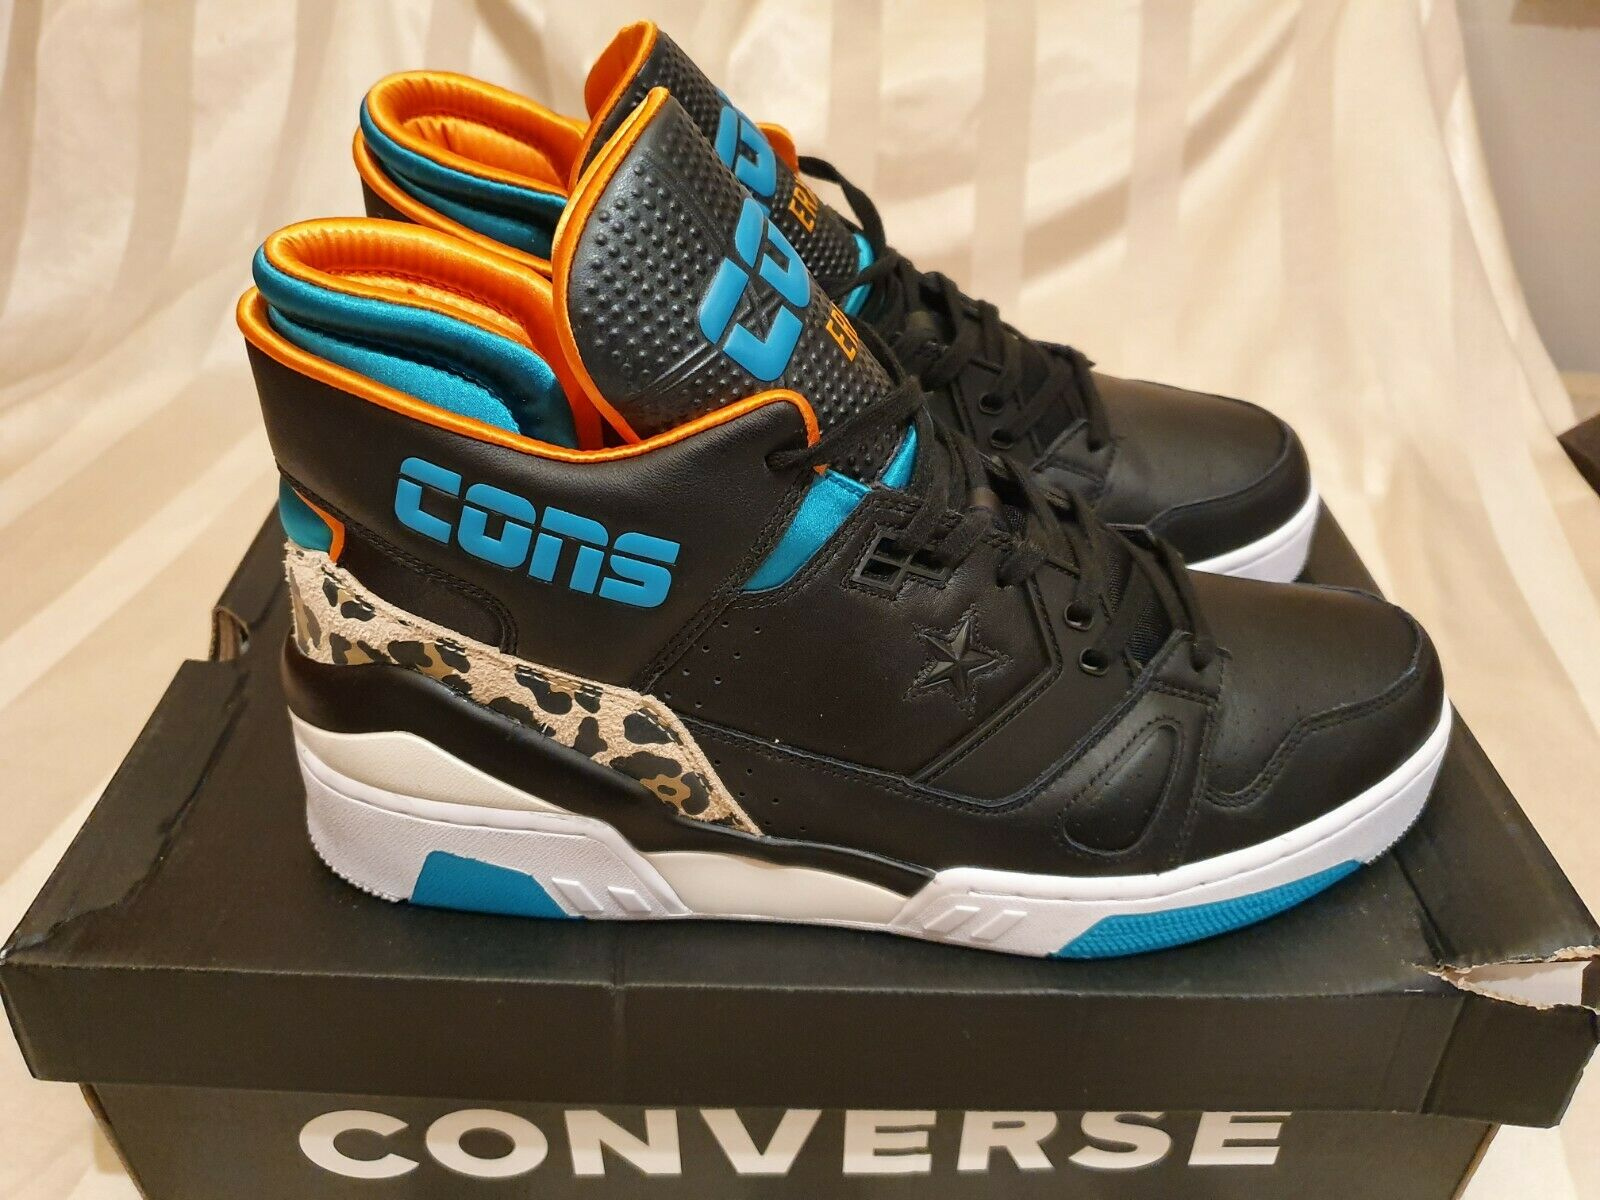 Converse ERX 260 Mid x Don  Pack  Just Negro Nuevo (Animal 12 EE. UU.) Limited Max Air